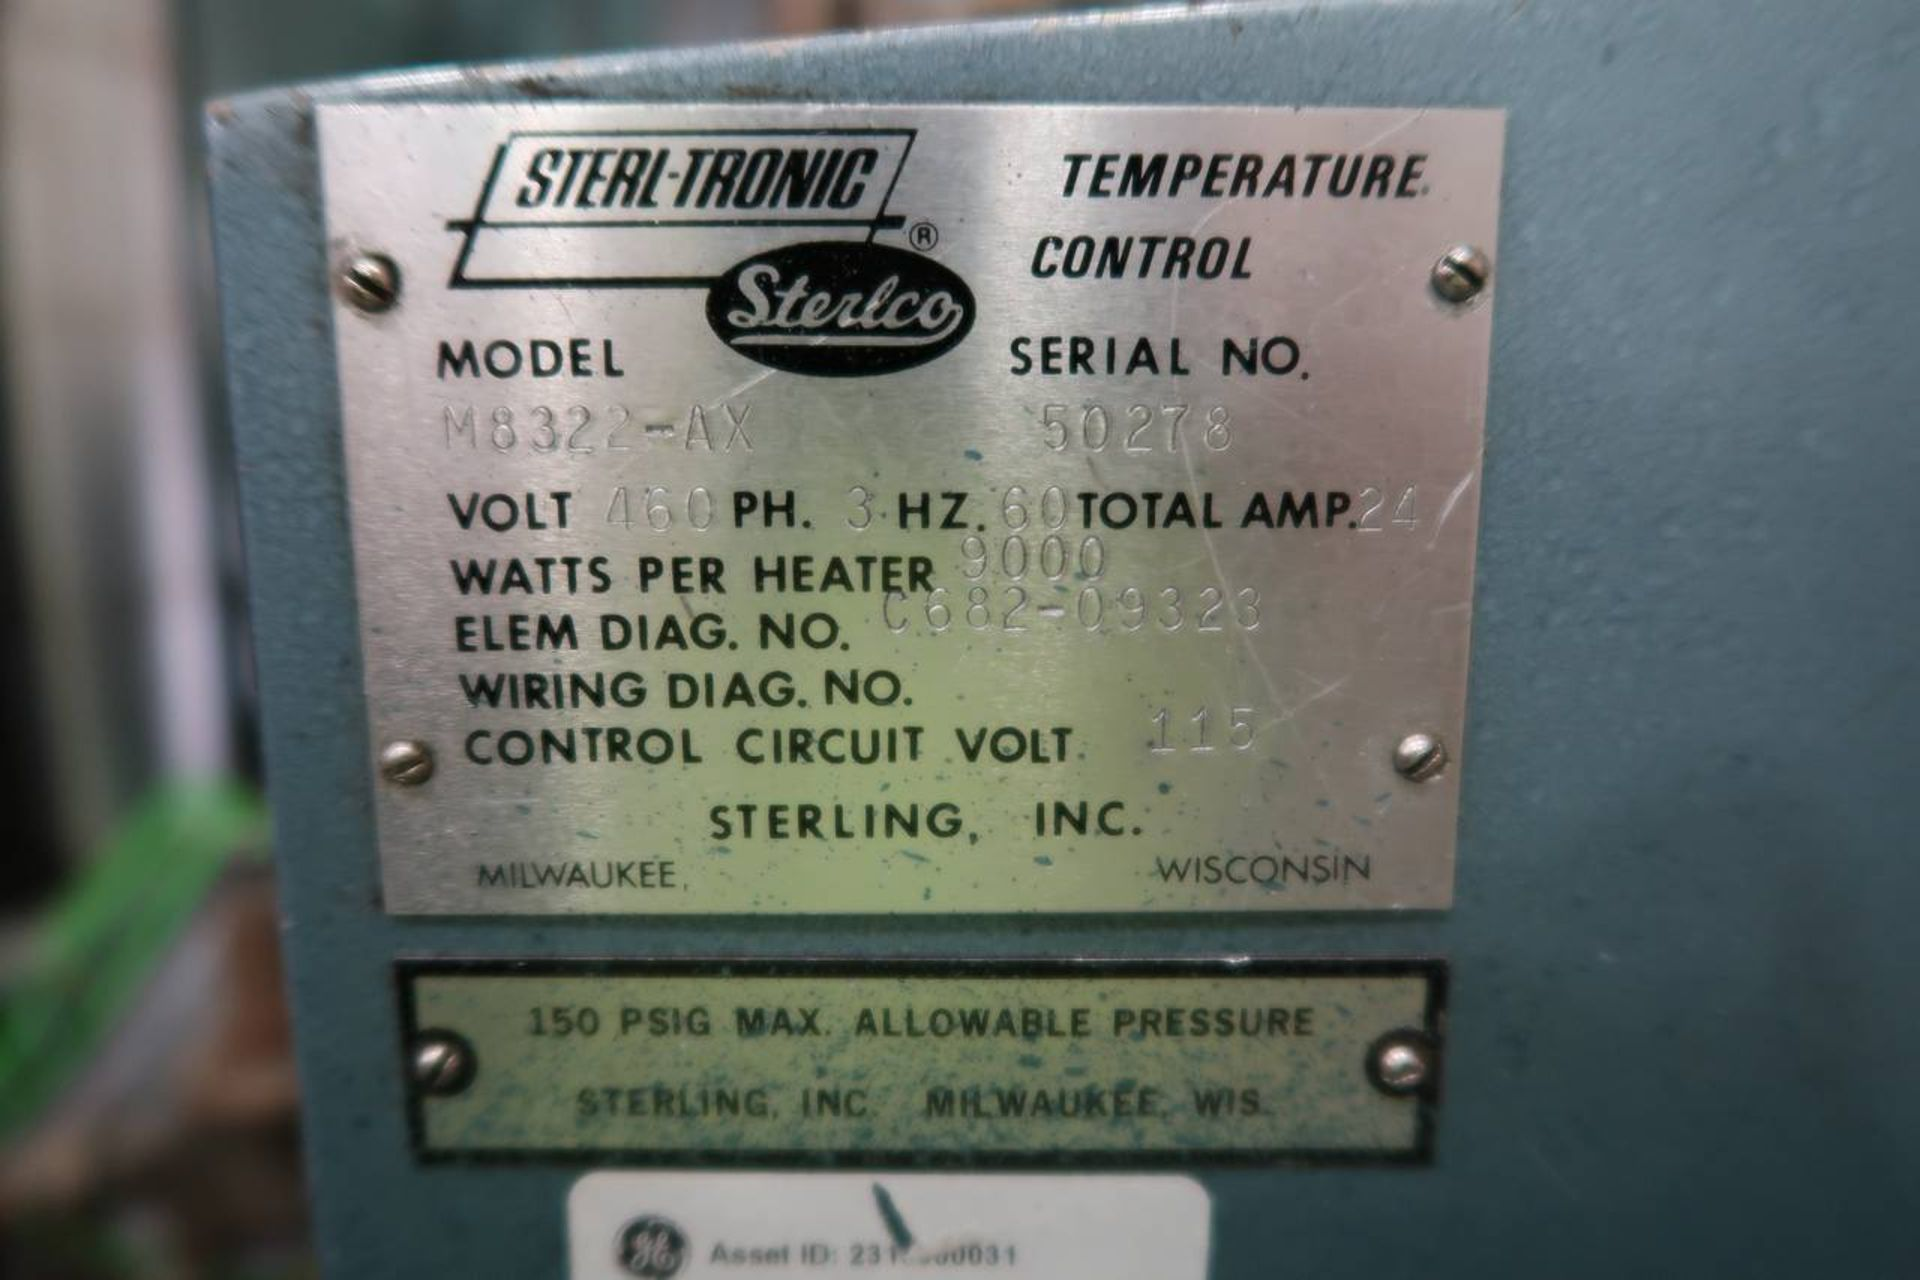 1986 HPM 400-TP-20 400-Ton Thermo Plastic Injection Molding Press - Image 32 of 40